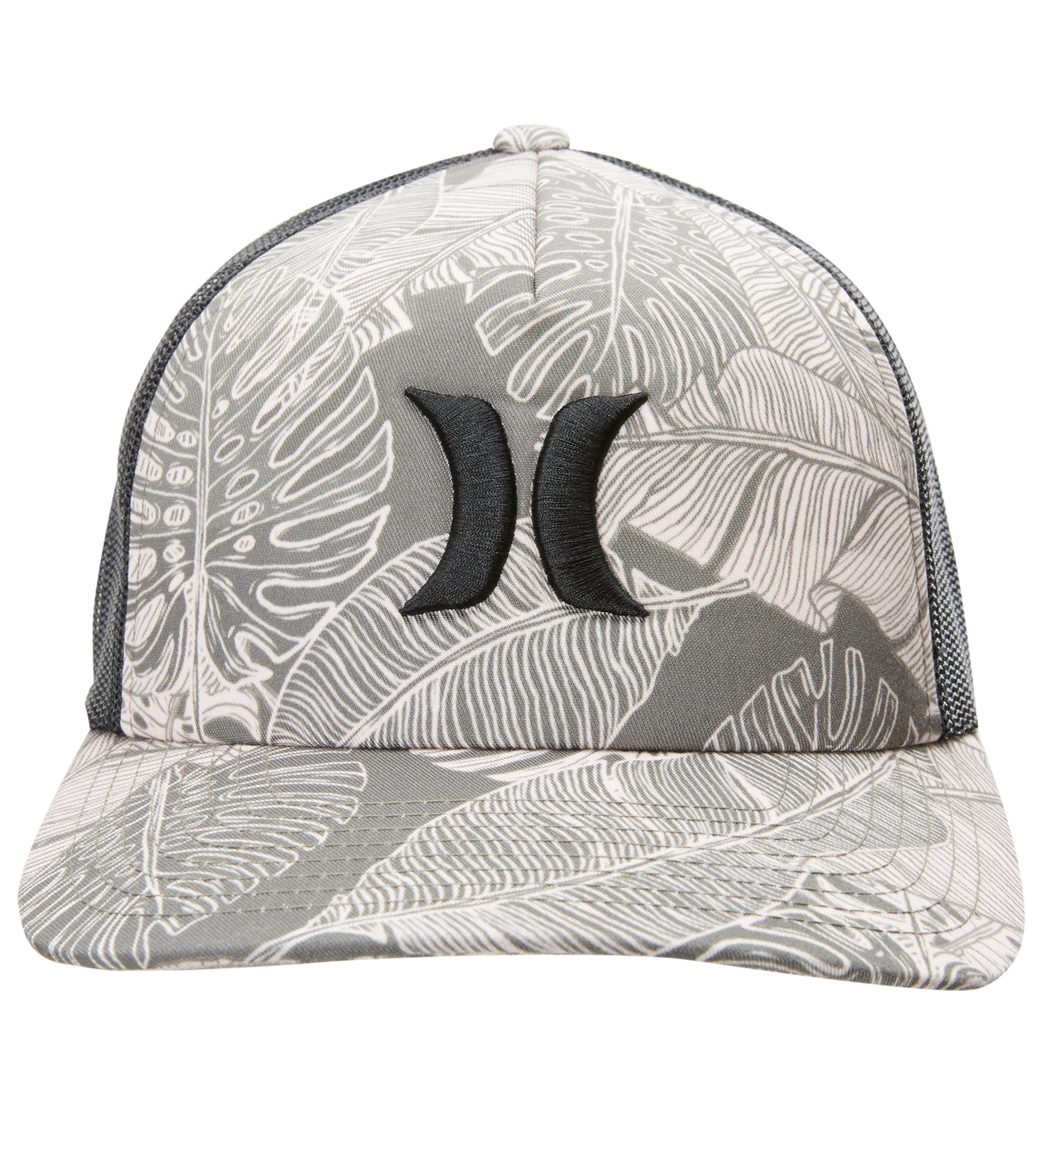 bbb8316dad6 Hurley Paradise Winds Trucker Hat at SwimOutlet.com